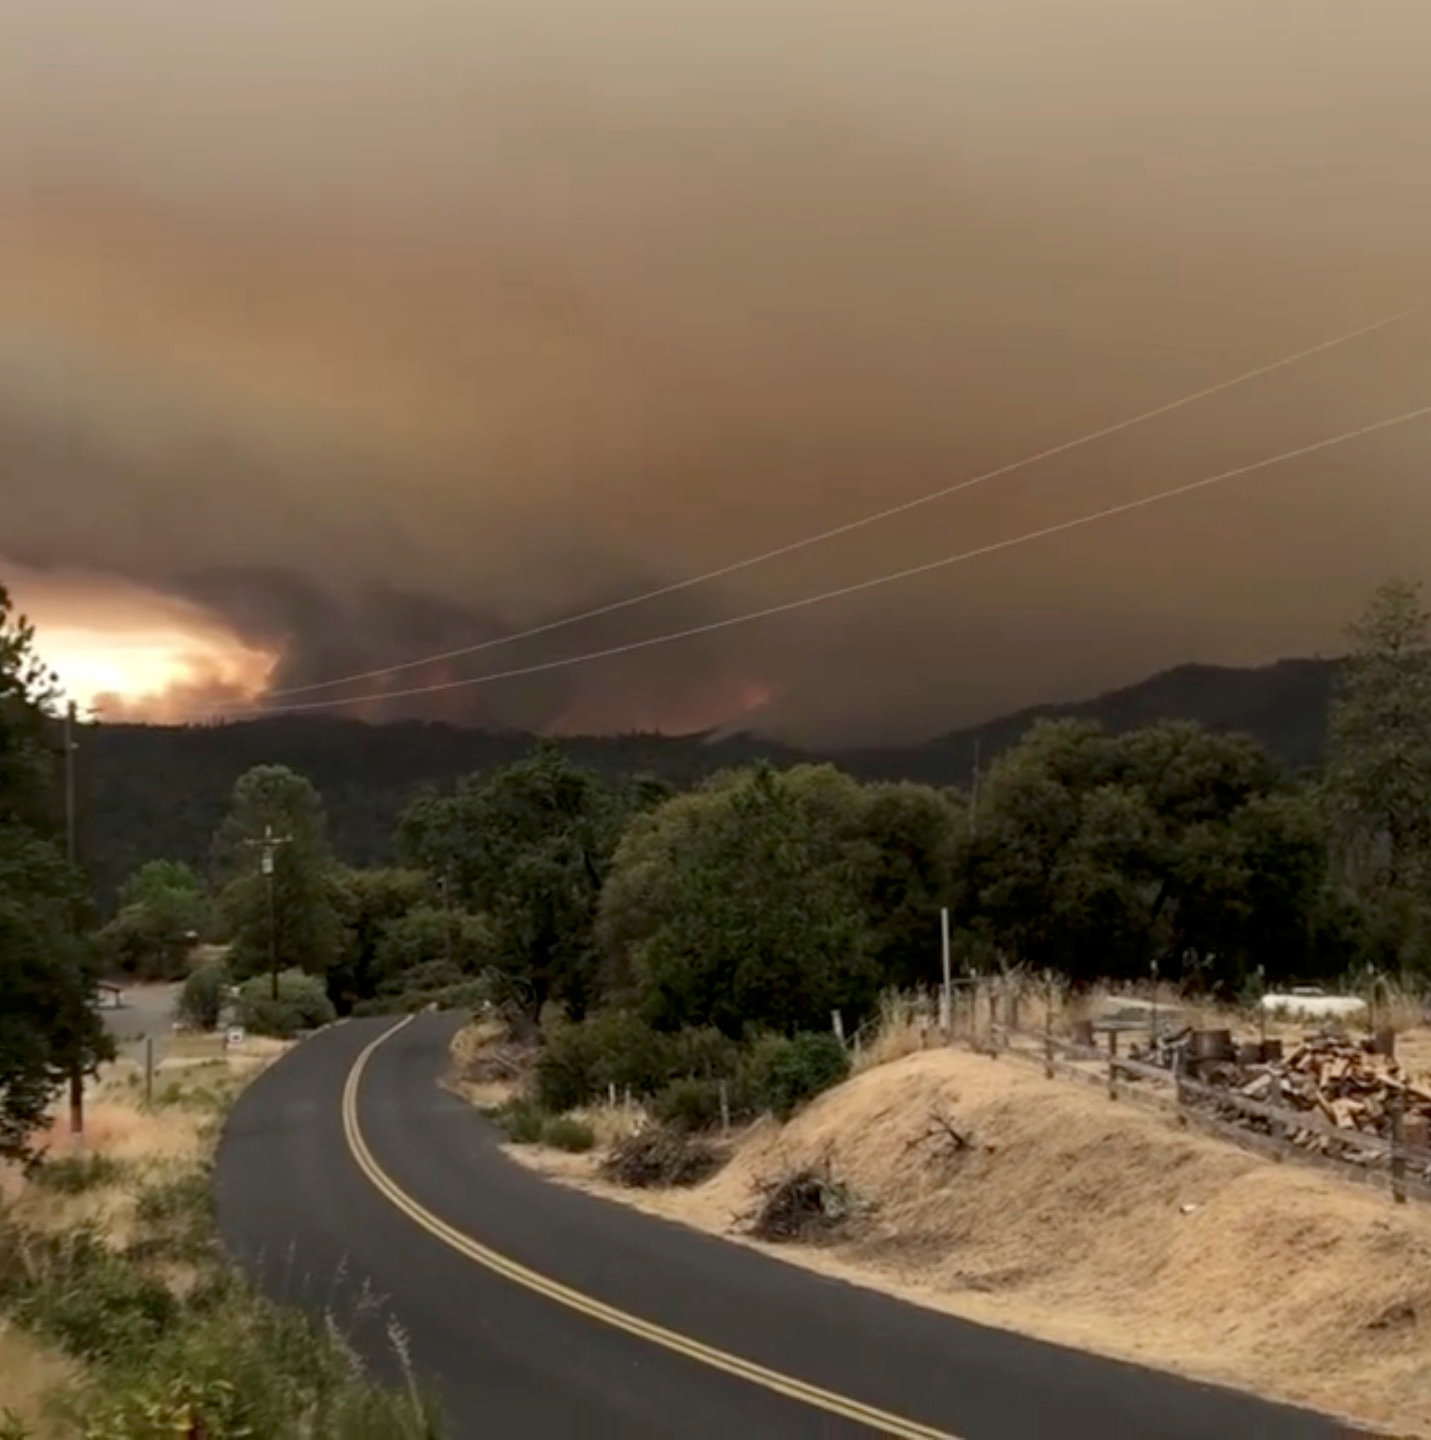 Flames and smoke rise from a treeline in Mariposa County, California, U.S., July 17, 2018 in this still image taken from a social media video obtained July 18, 2018. INSTAGRAM/@JSTETTS/via REUTERS